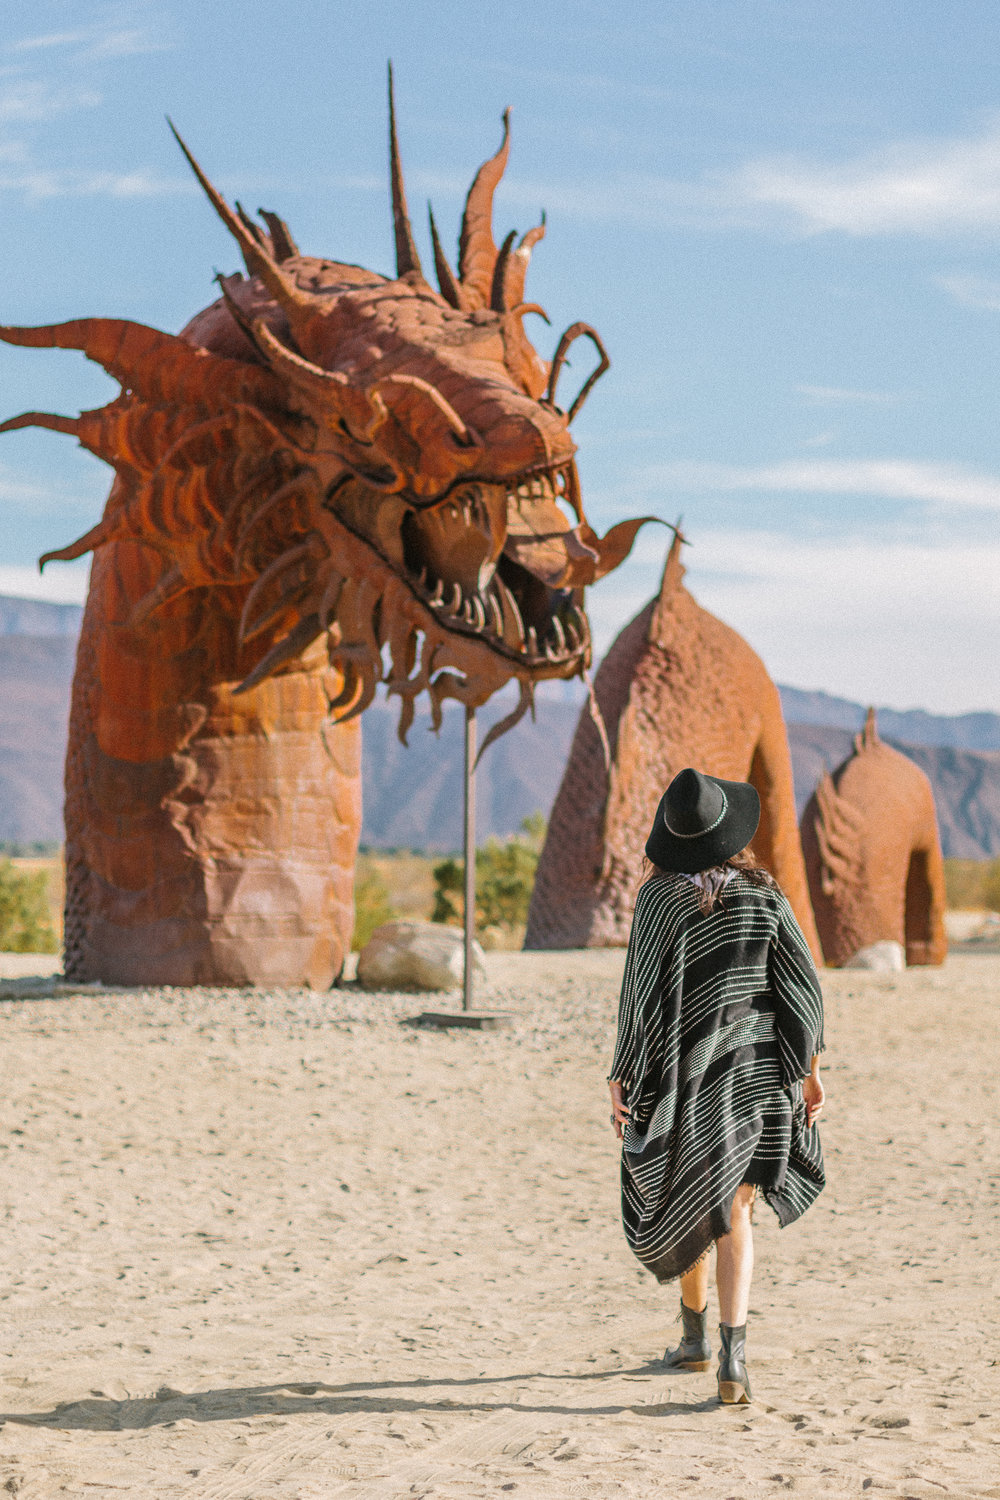 borrego springs dragon sculpture